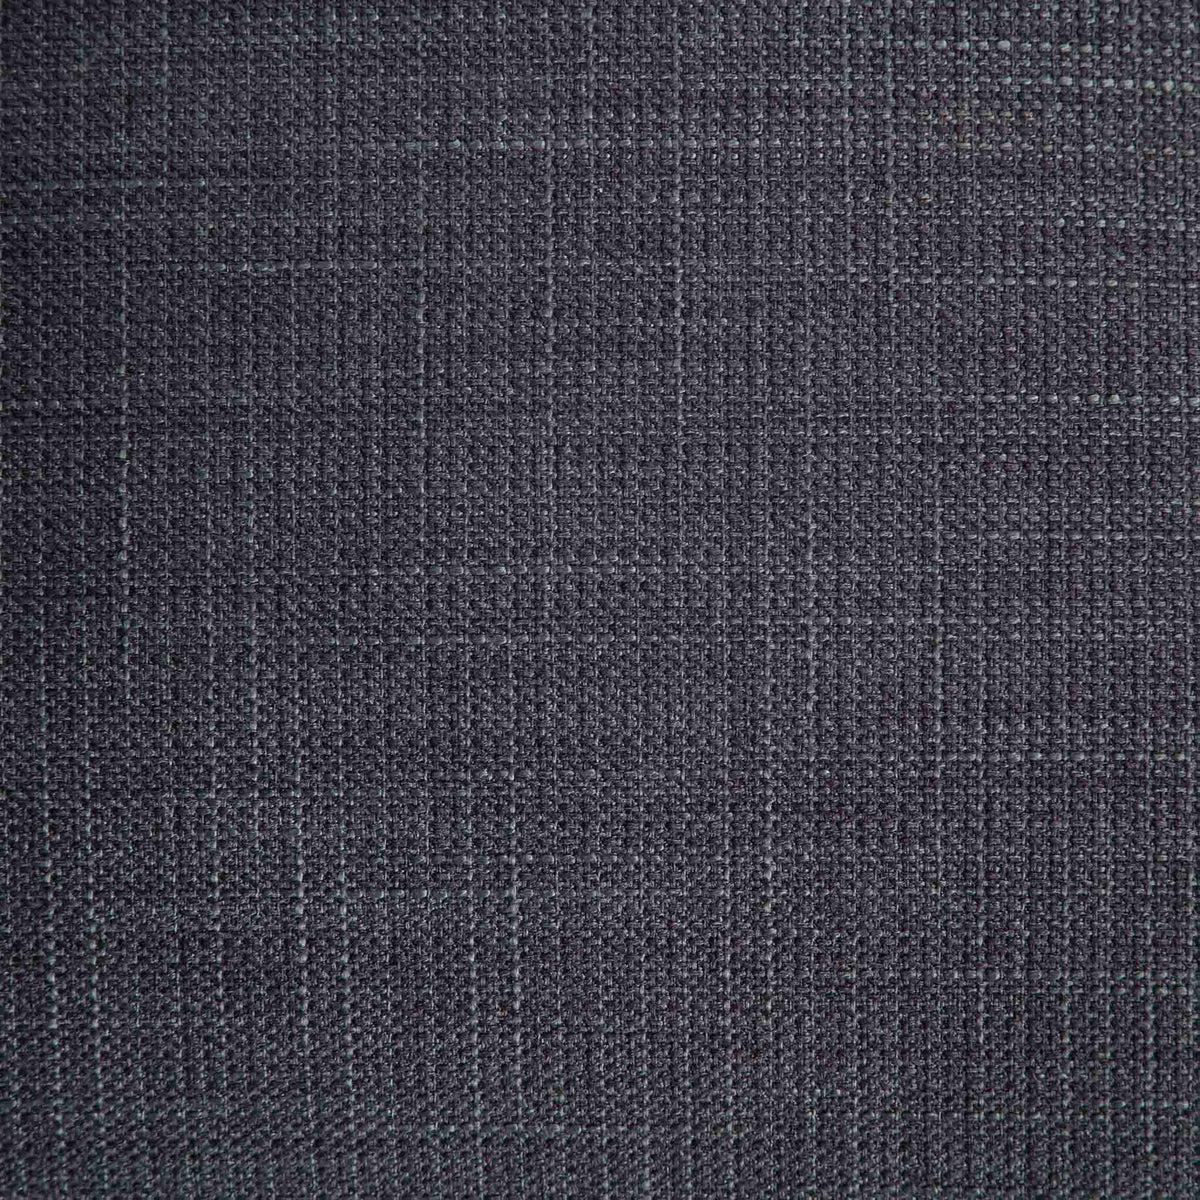 close up of black padded seat fabric